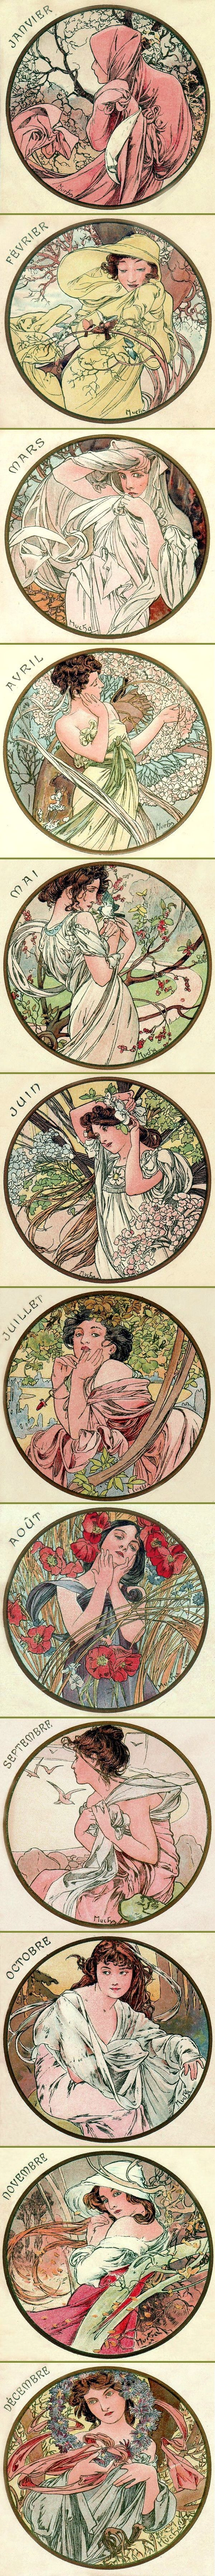 Alphonse Mucha - The Months (1899)